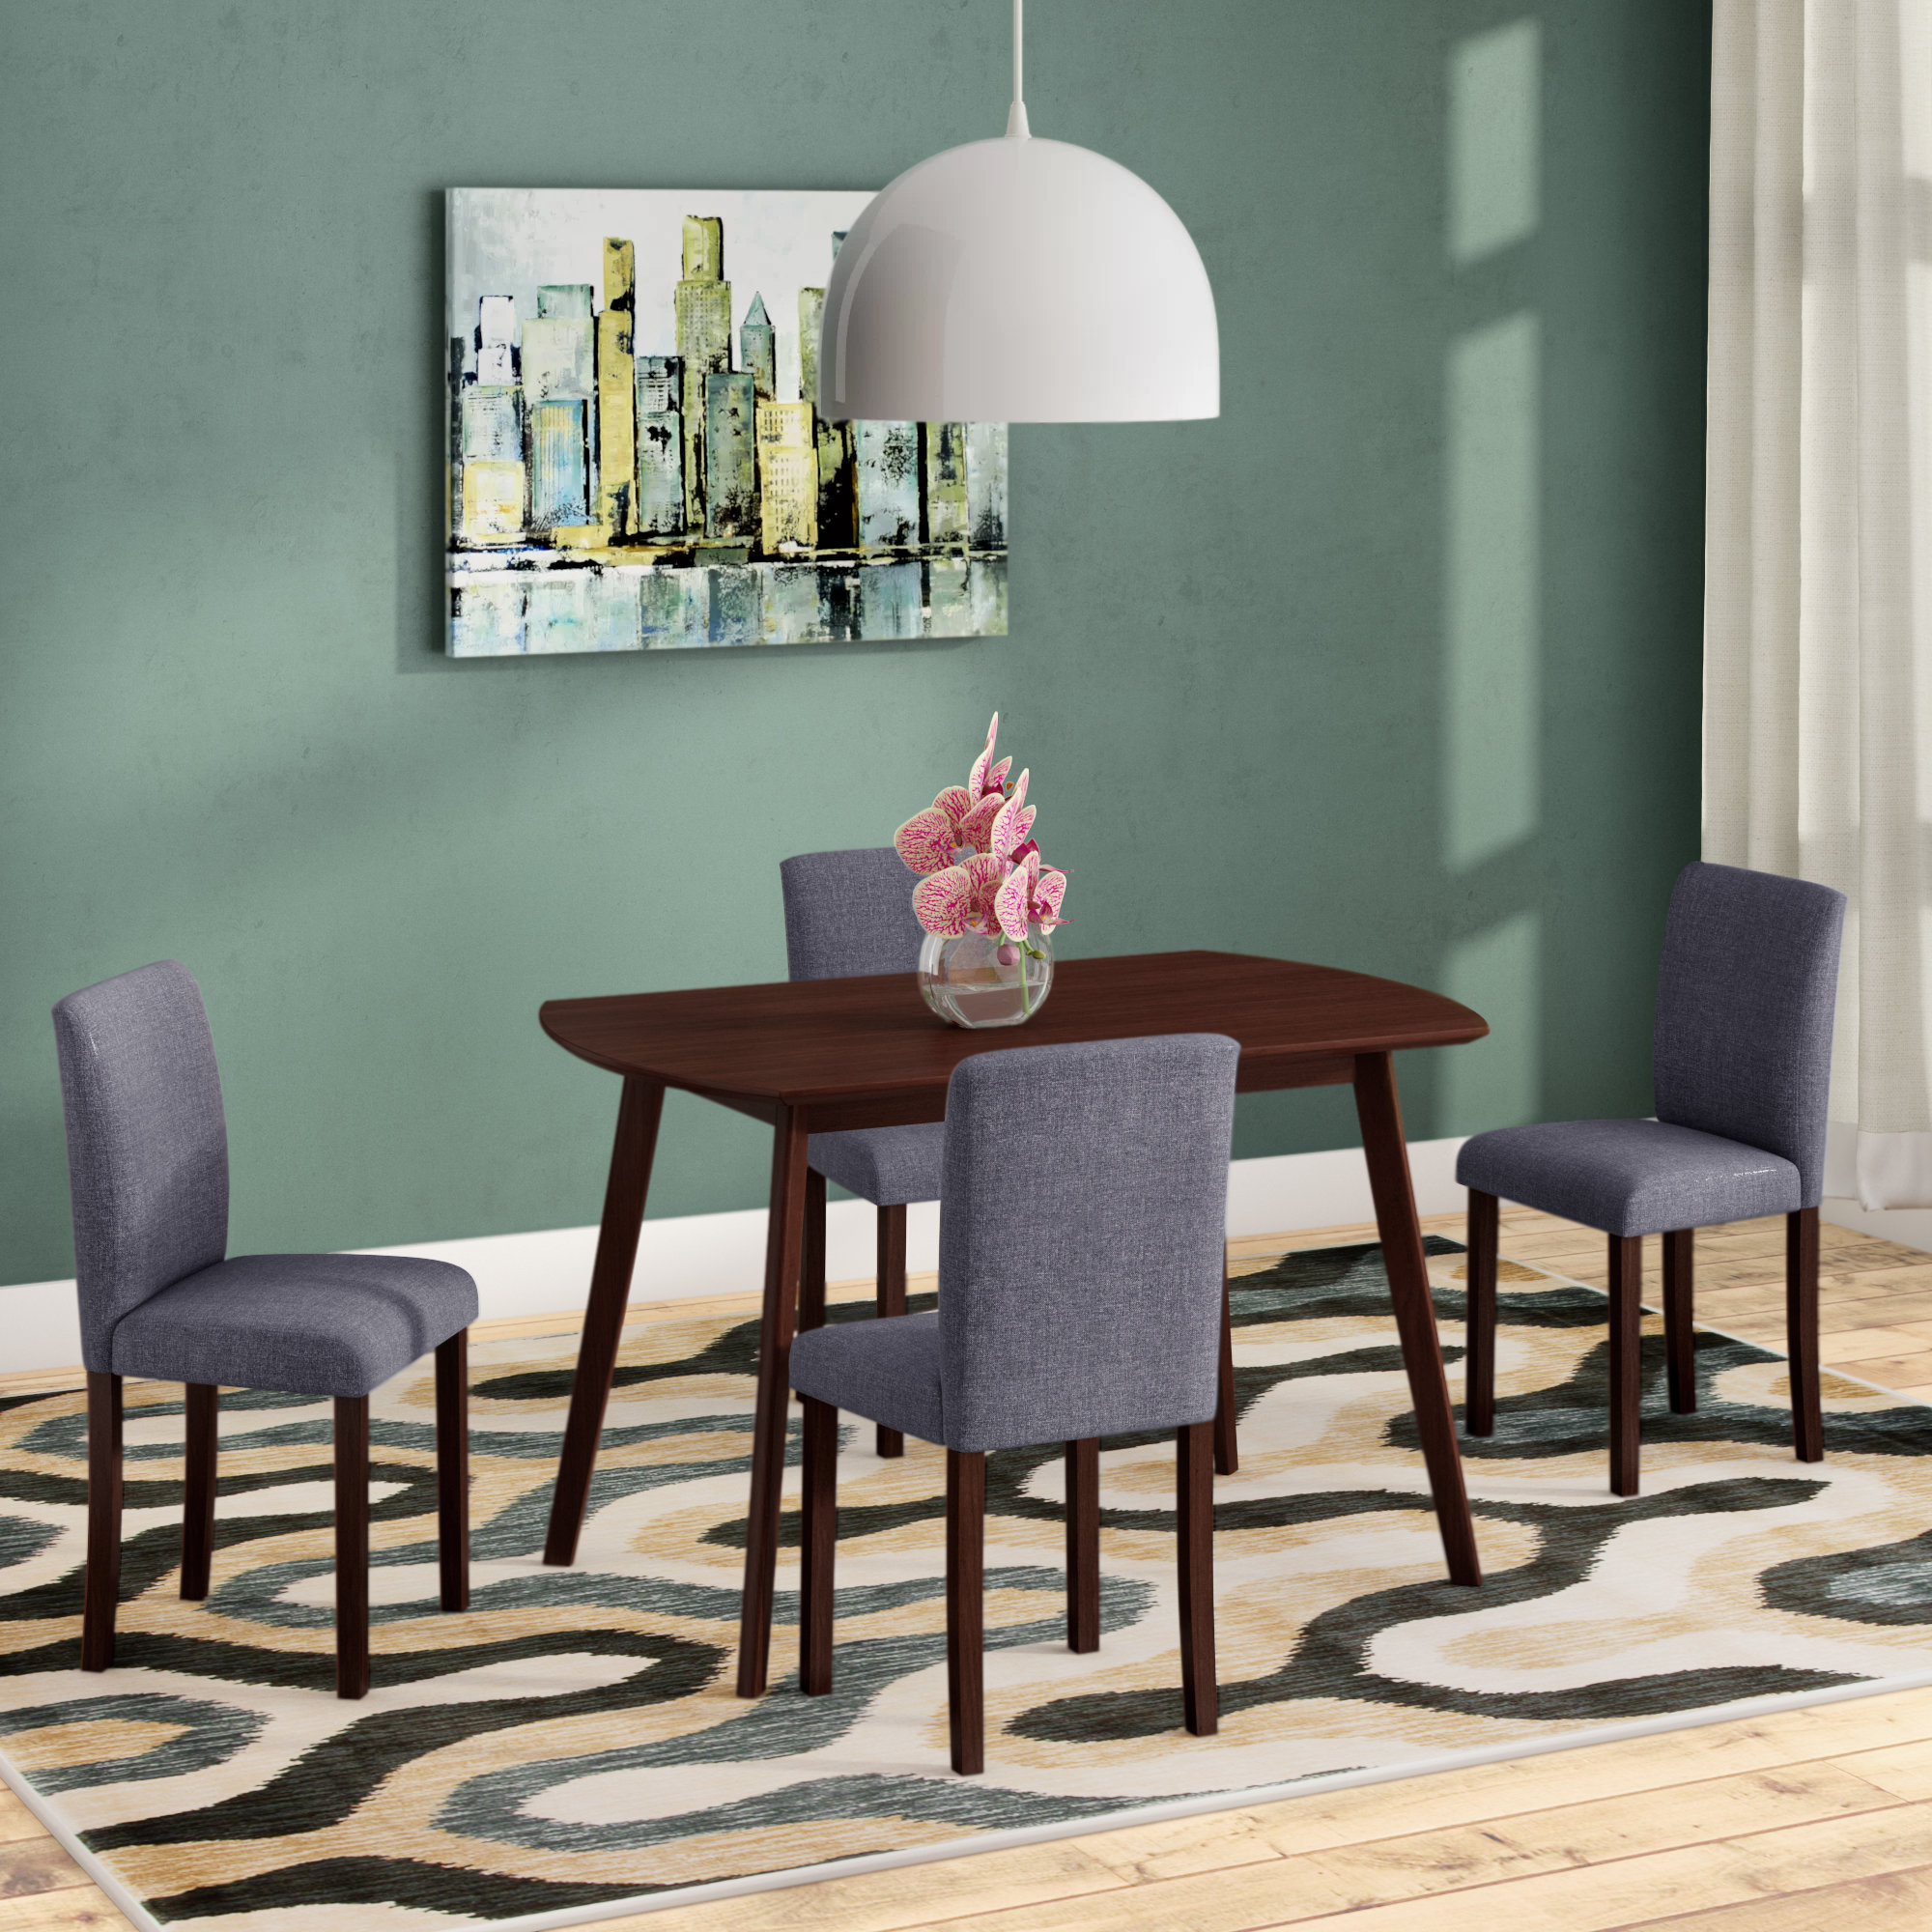 Details About Ebern Designs Errico 5 Piece Solid Wood Dining Set In Current Ephraim 5 Piece Dining Sets (View 18 of 20)